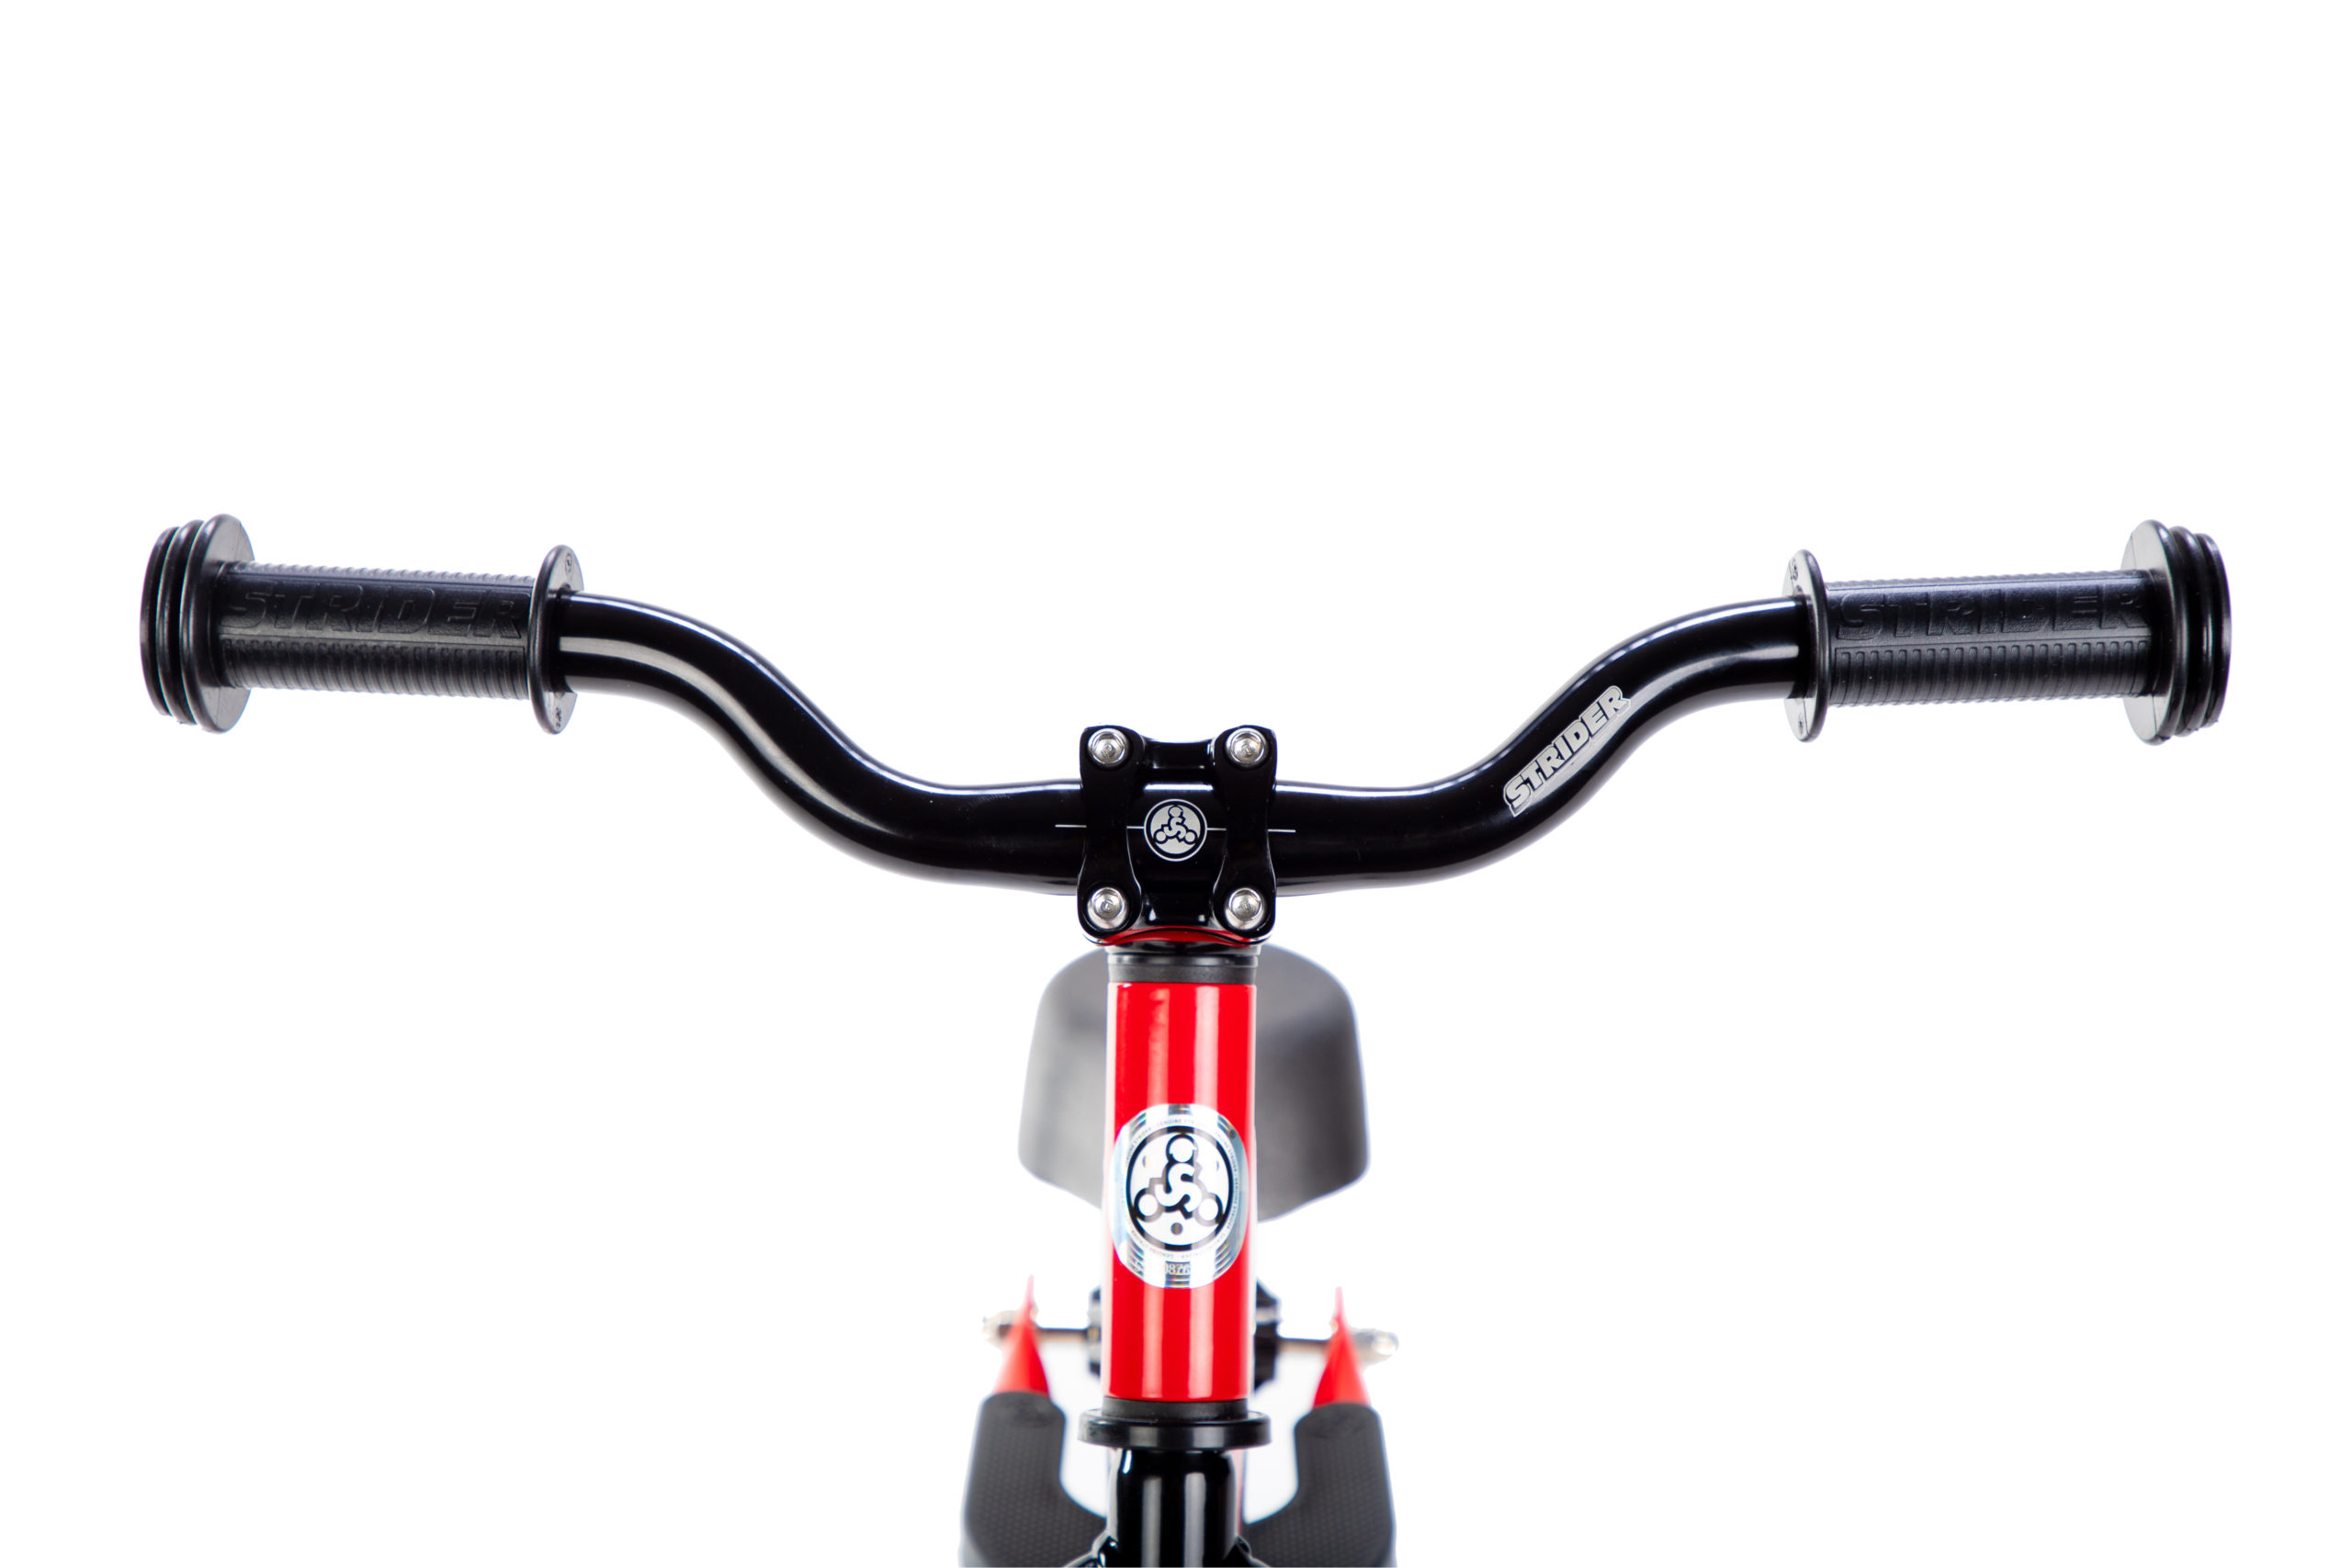 Studio image of Strider Aluminum Riser Handlebar with Grips on red 12 Sport - close-up front view